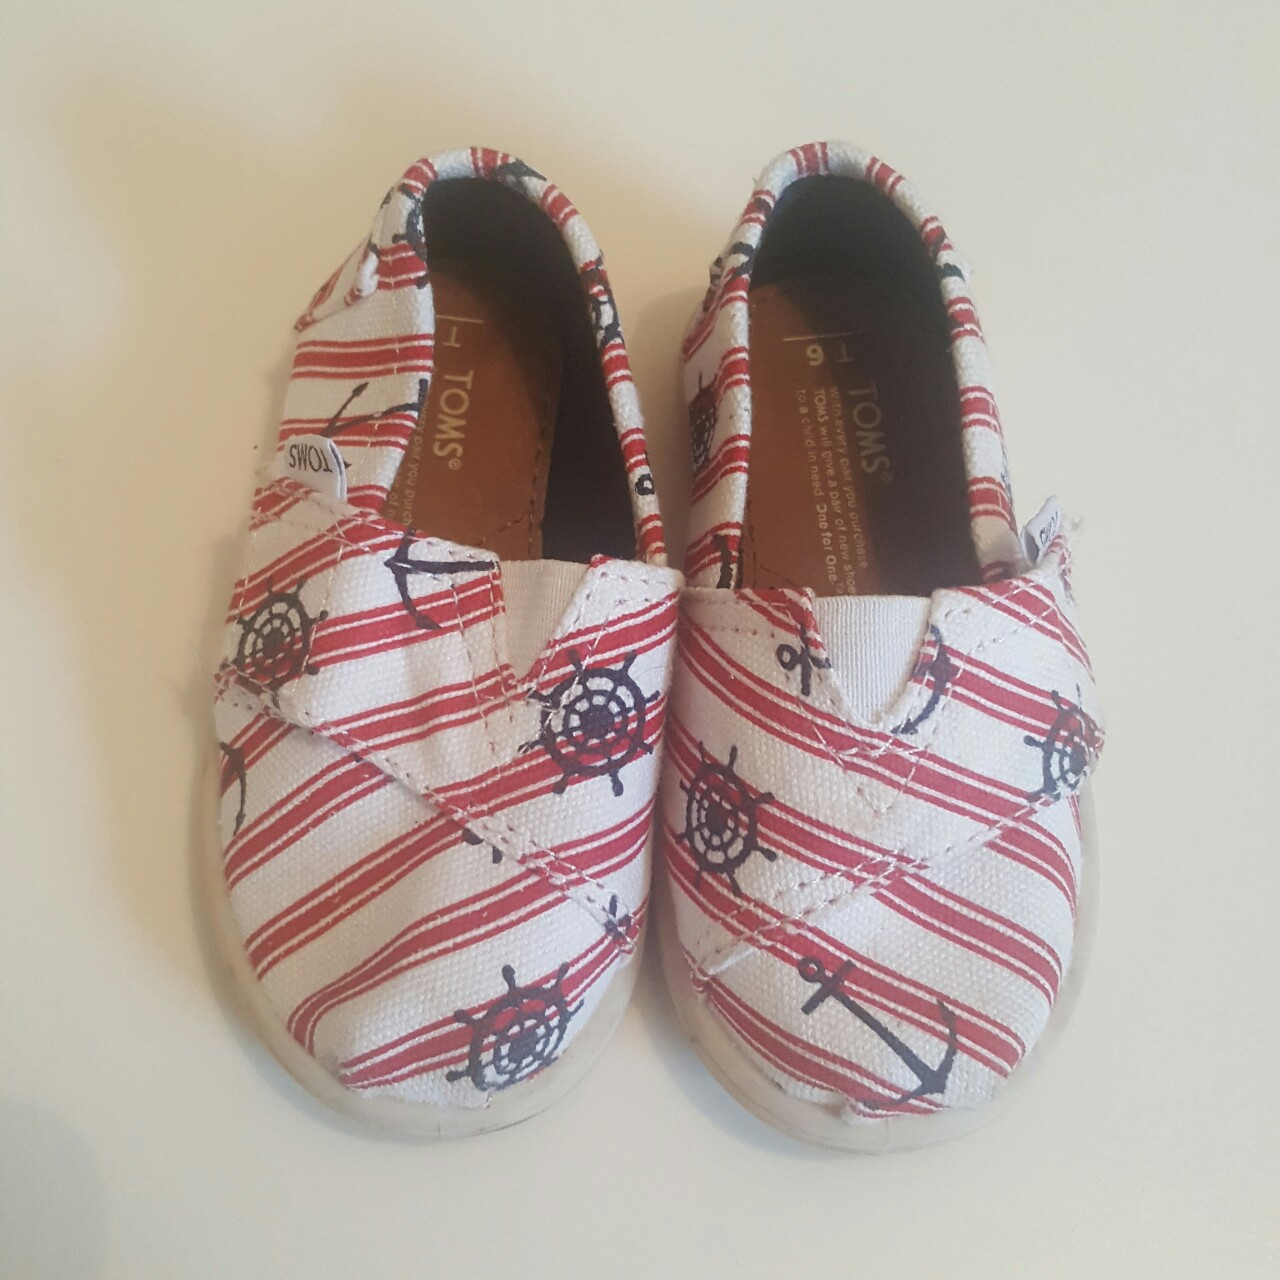 Baby Boys ShoesMothercareRed Slp On PumpsVarious Sizes